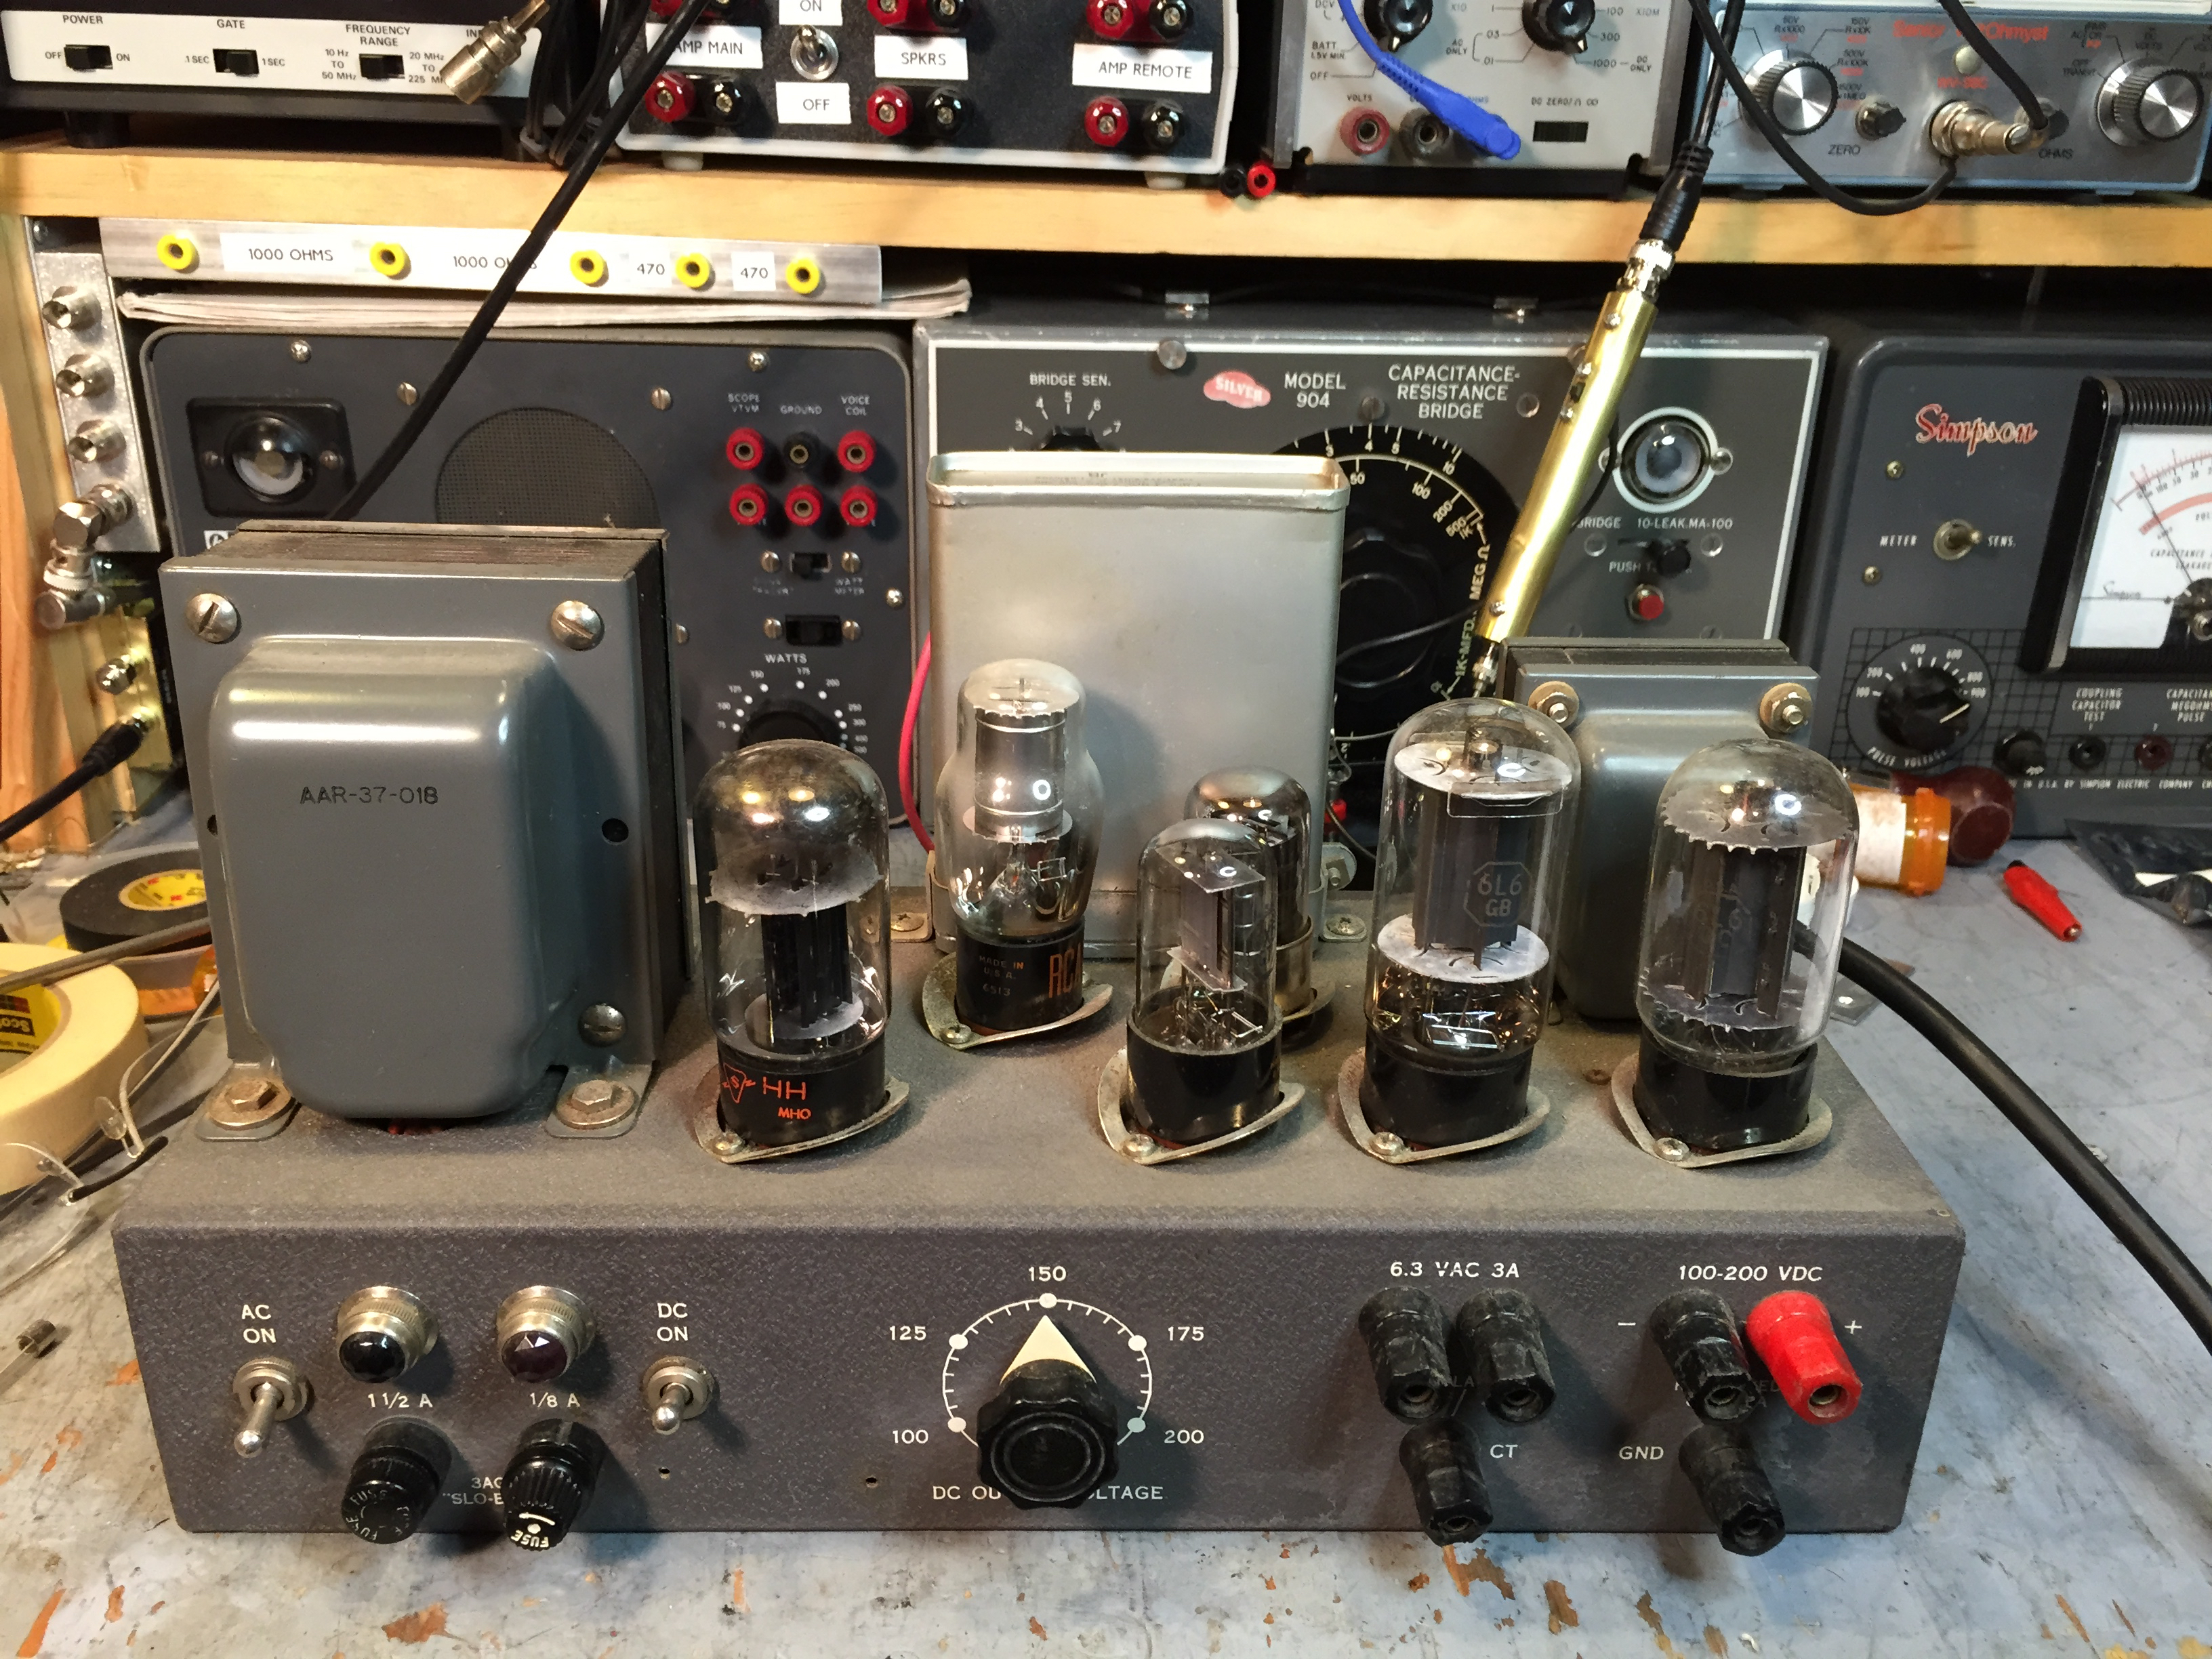 Lambda 26 High Voltage Power Supply Steves Web Junkyard Steve Byan Voltagecontrolledstatevariablefilter Powersupplycircuit Its A Nice Vacuum Tube With Outputs Of 63 Volts Ac For Filaments And Adjustable From 100 To 200 Dc At Up Ma